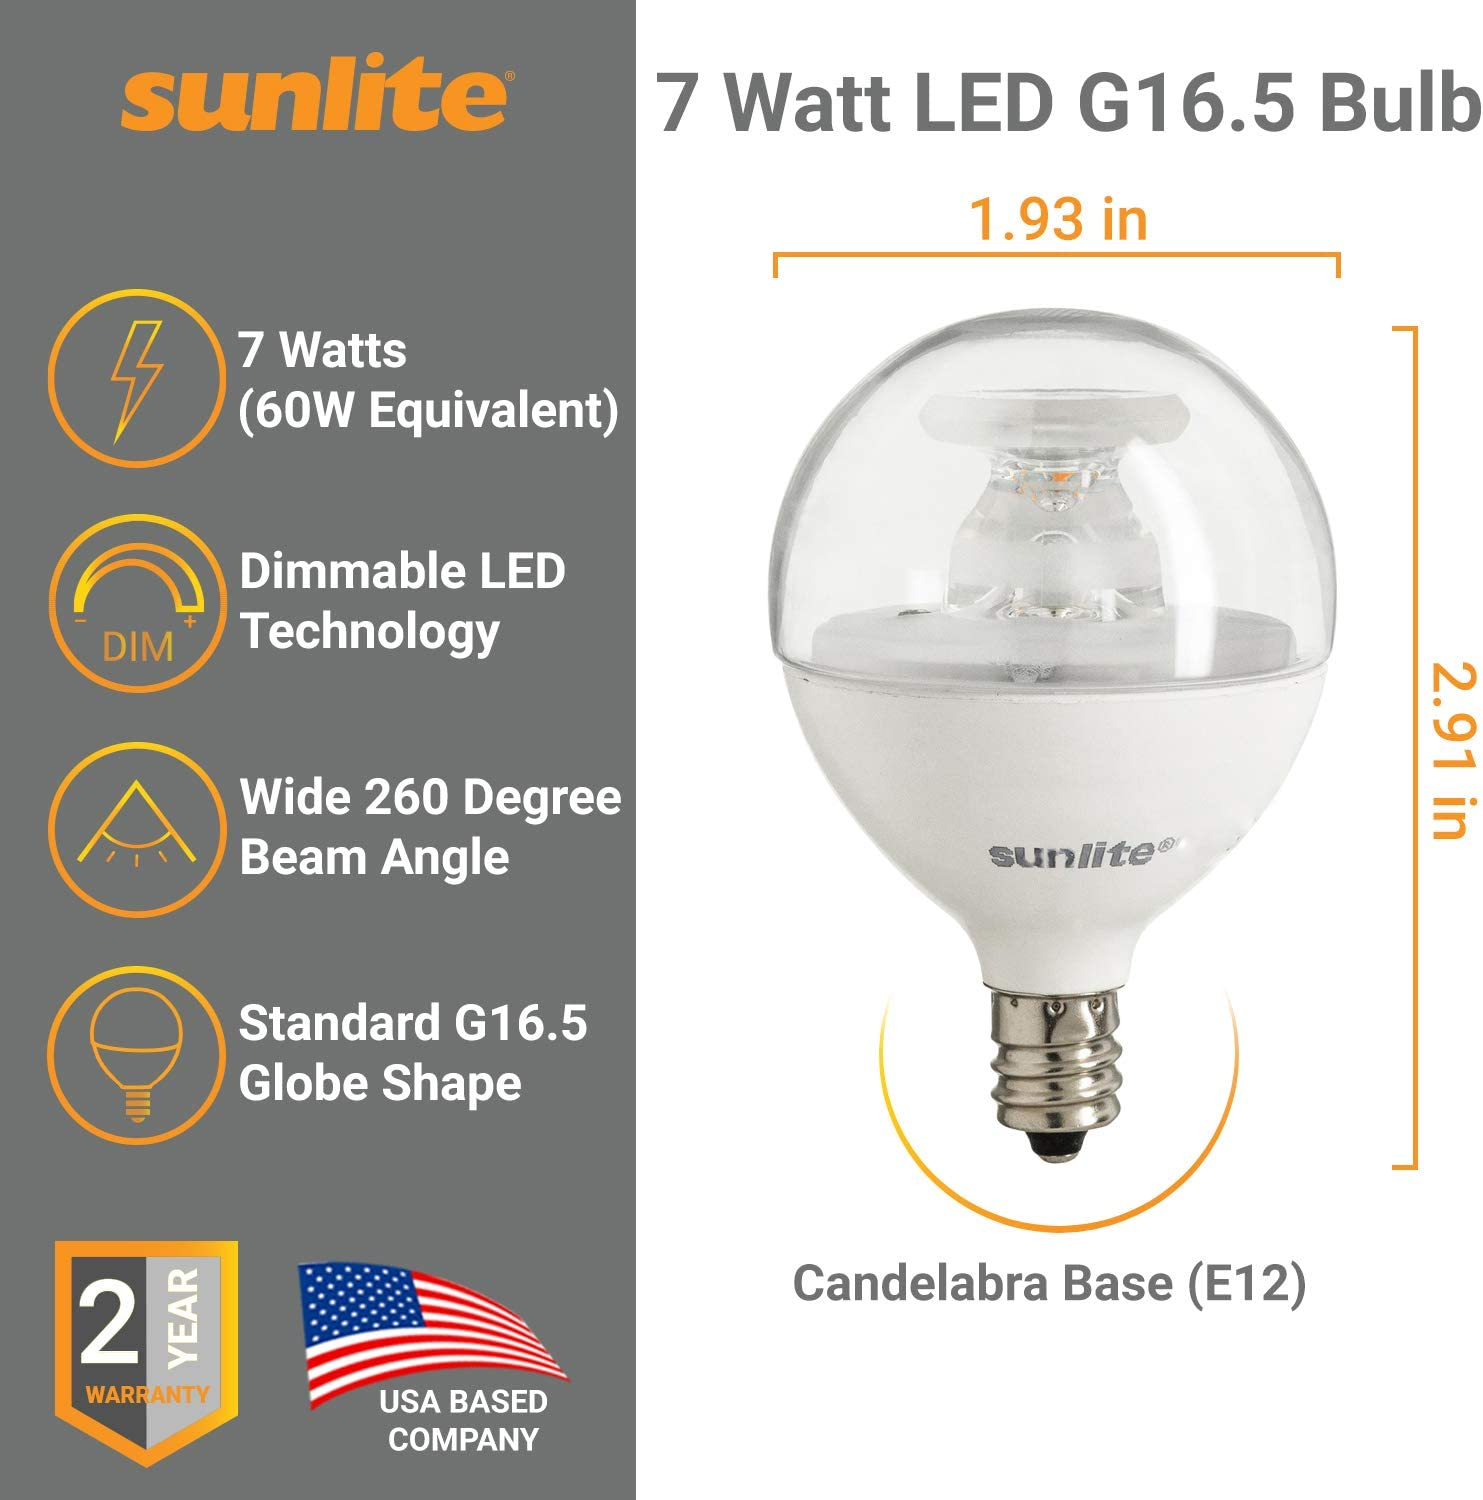 EOV293 #YY12R 6 Pcs LED Bulb 7W Globe G16.5 Candelabra Base Warm White Dimmable Compatible with Sunlite